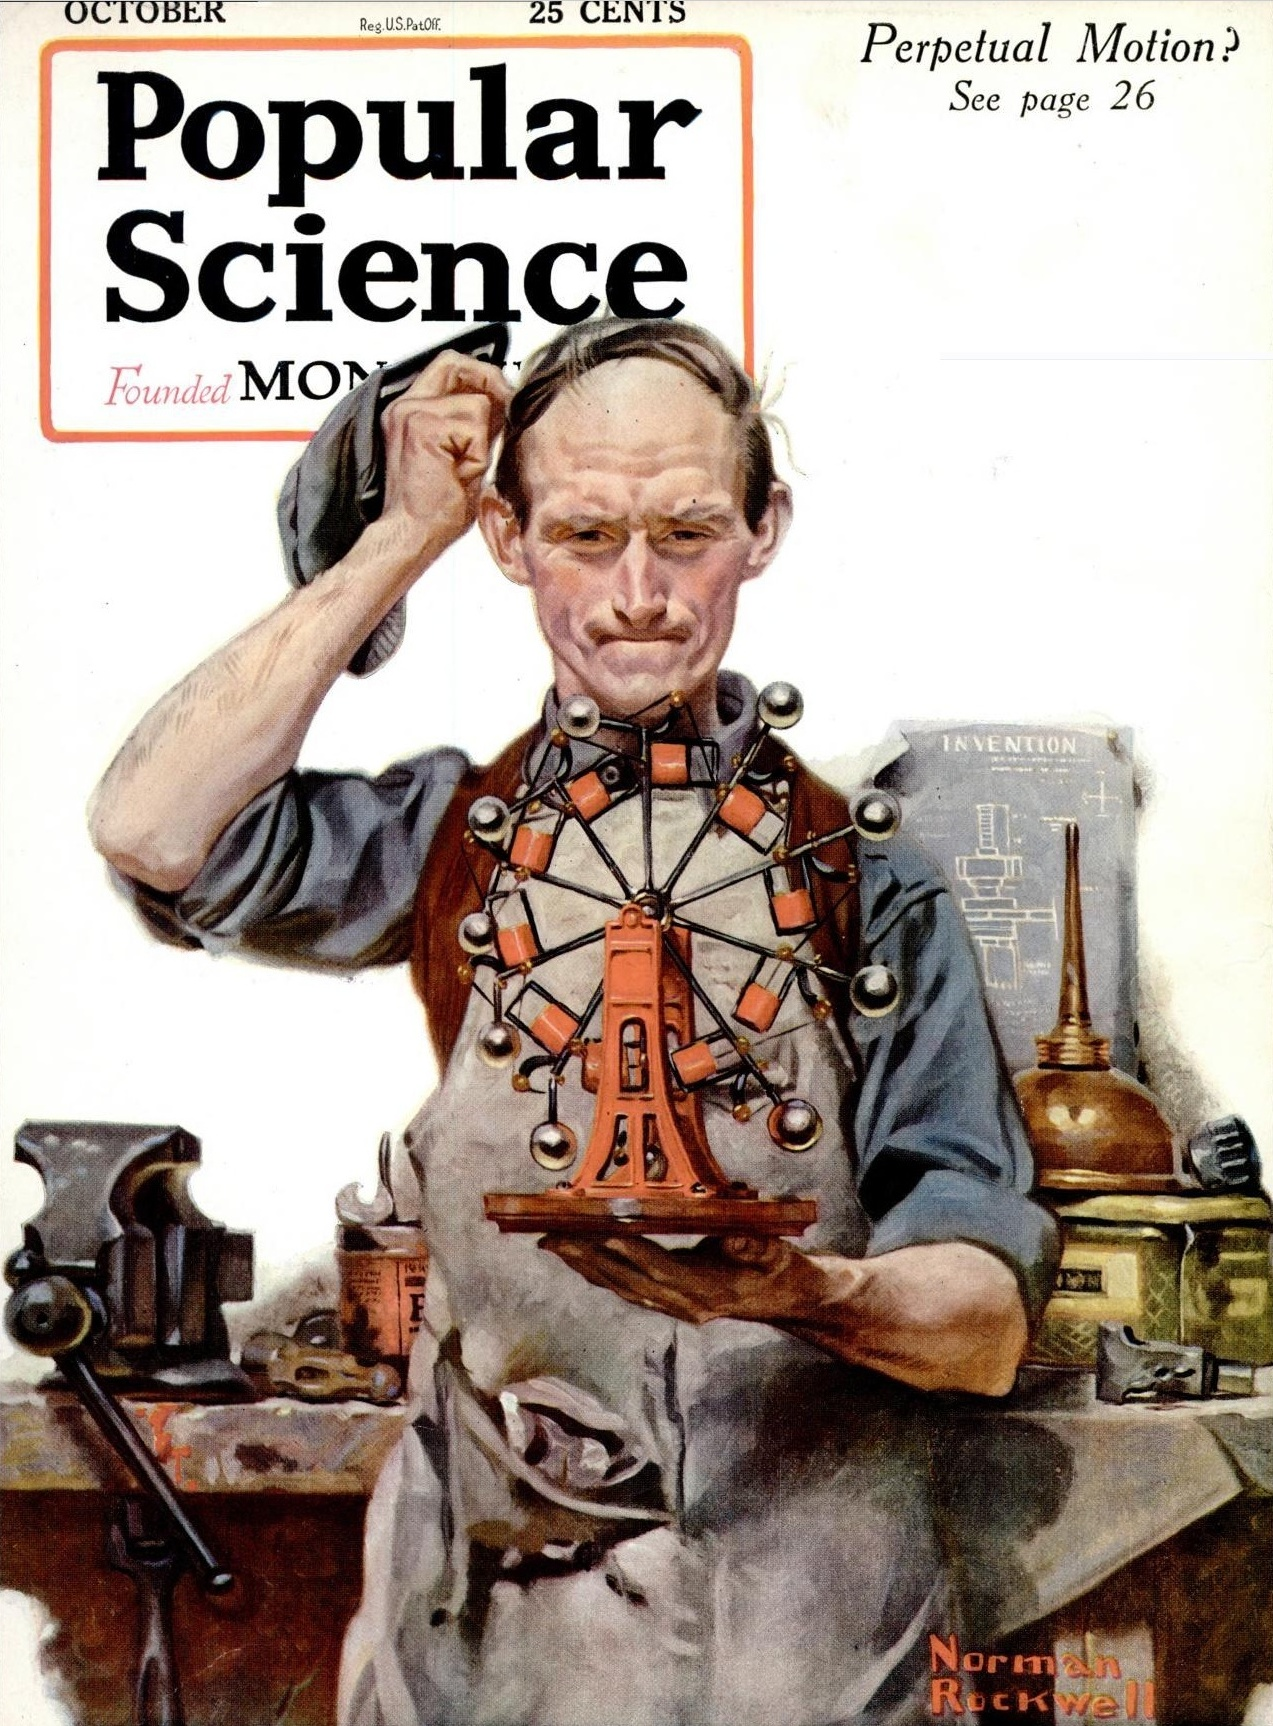 http://upload.wikimedia.org/wikipedia/commons/a/aa/Perpetual_Motion_by_Norman_Rockwell.jpg